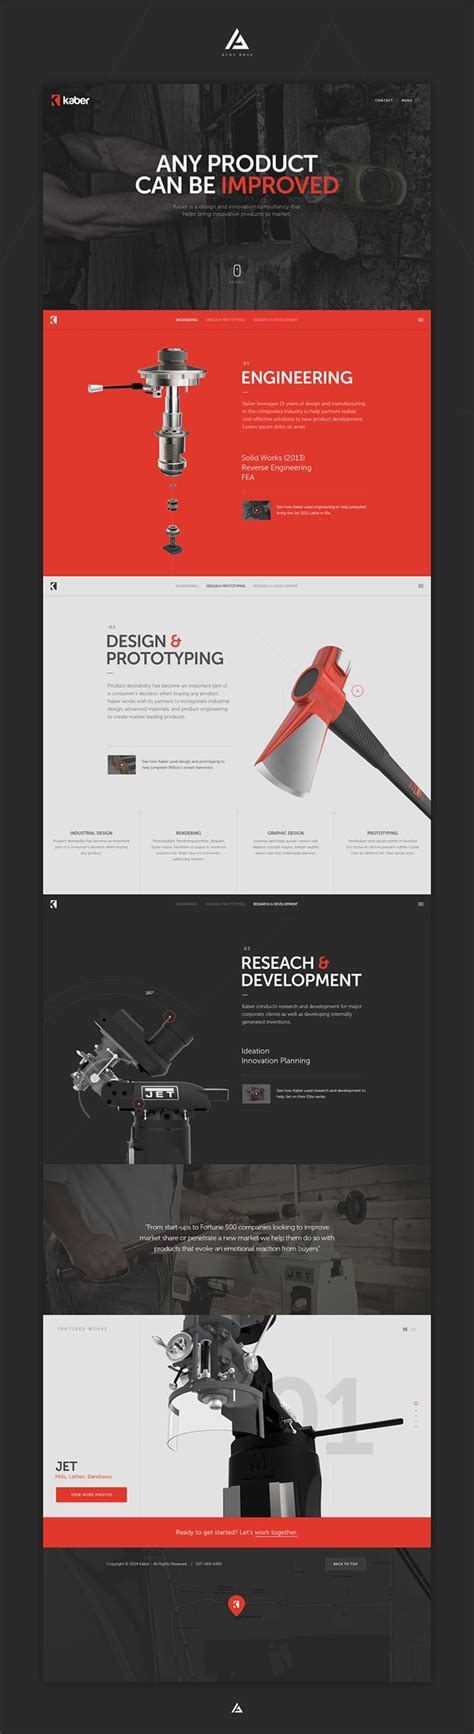 web site design 20 clean web design inspiration 2015